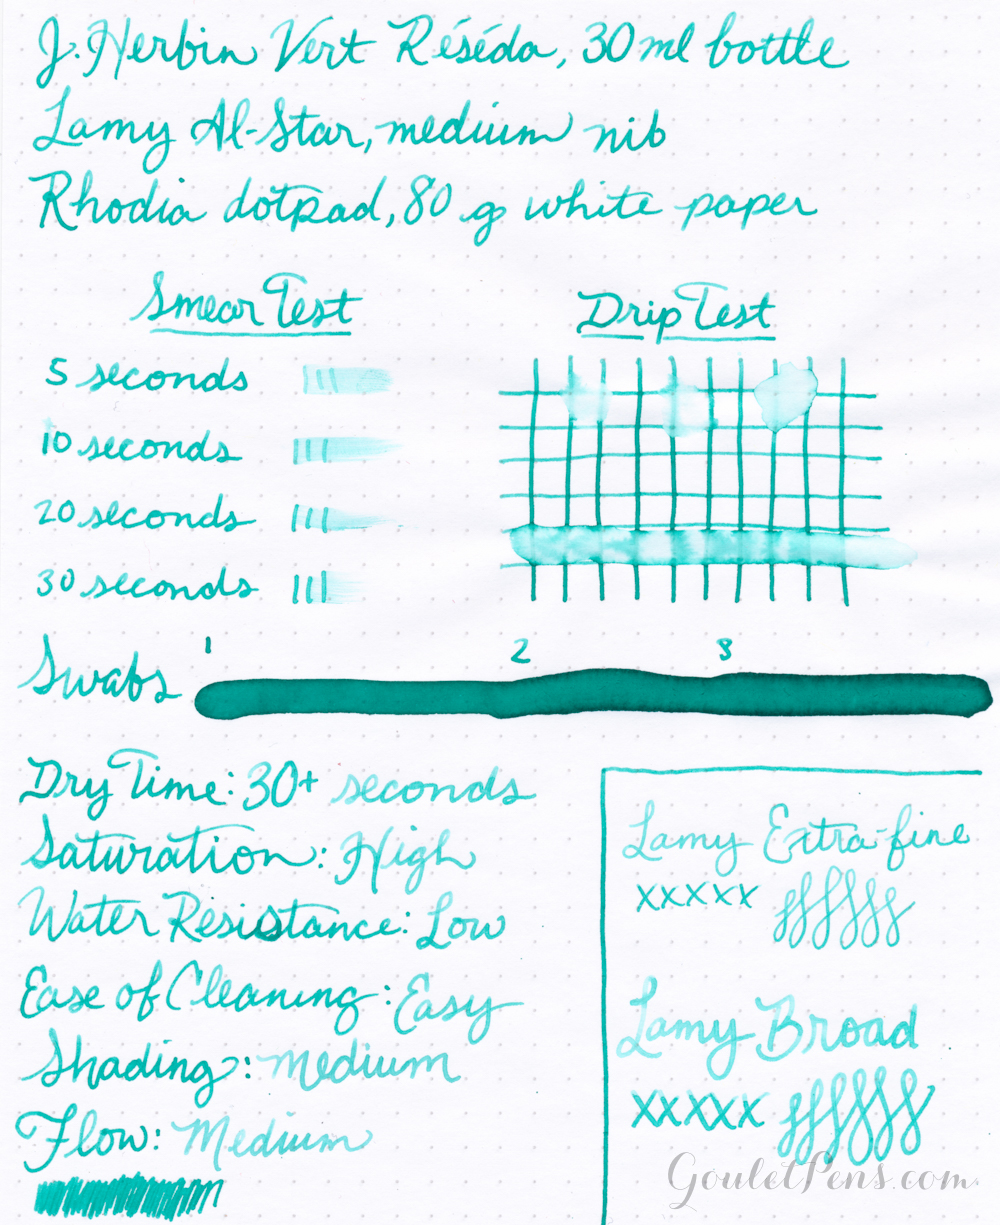 Handwritten ink review of J. Herbin Vert Réséda including dry time, drip test, and swabs.